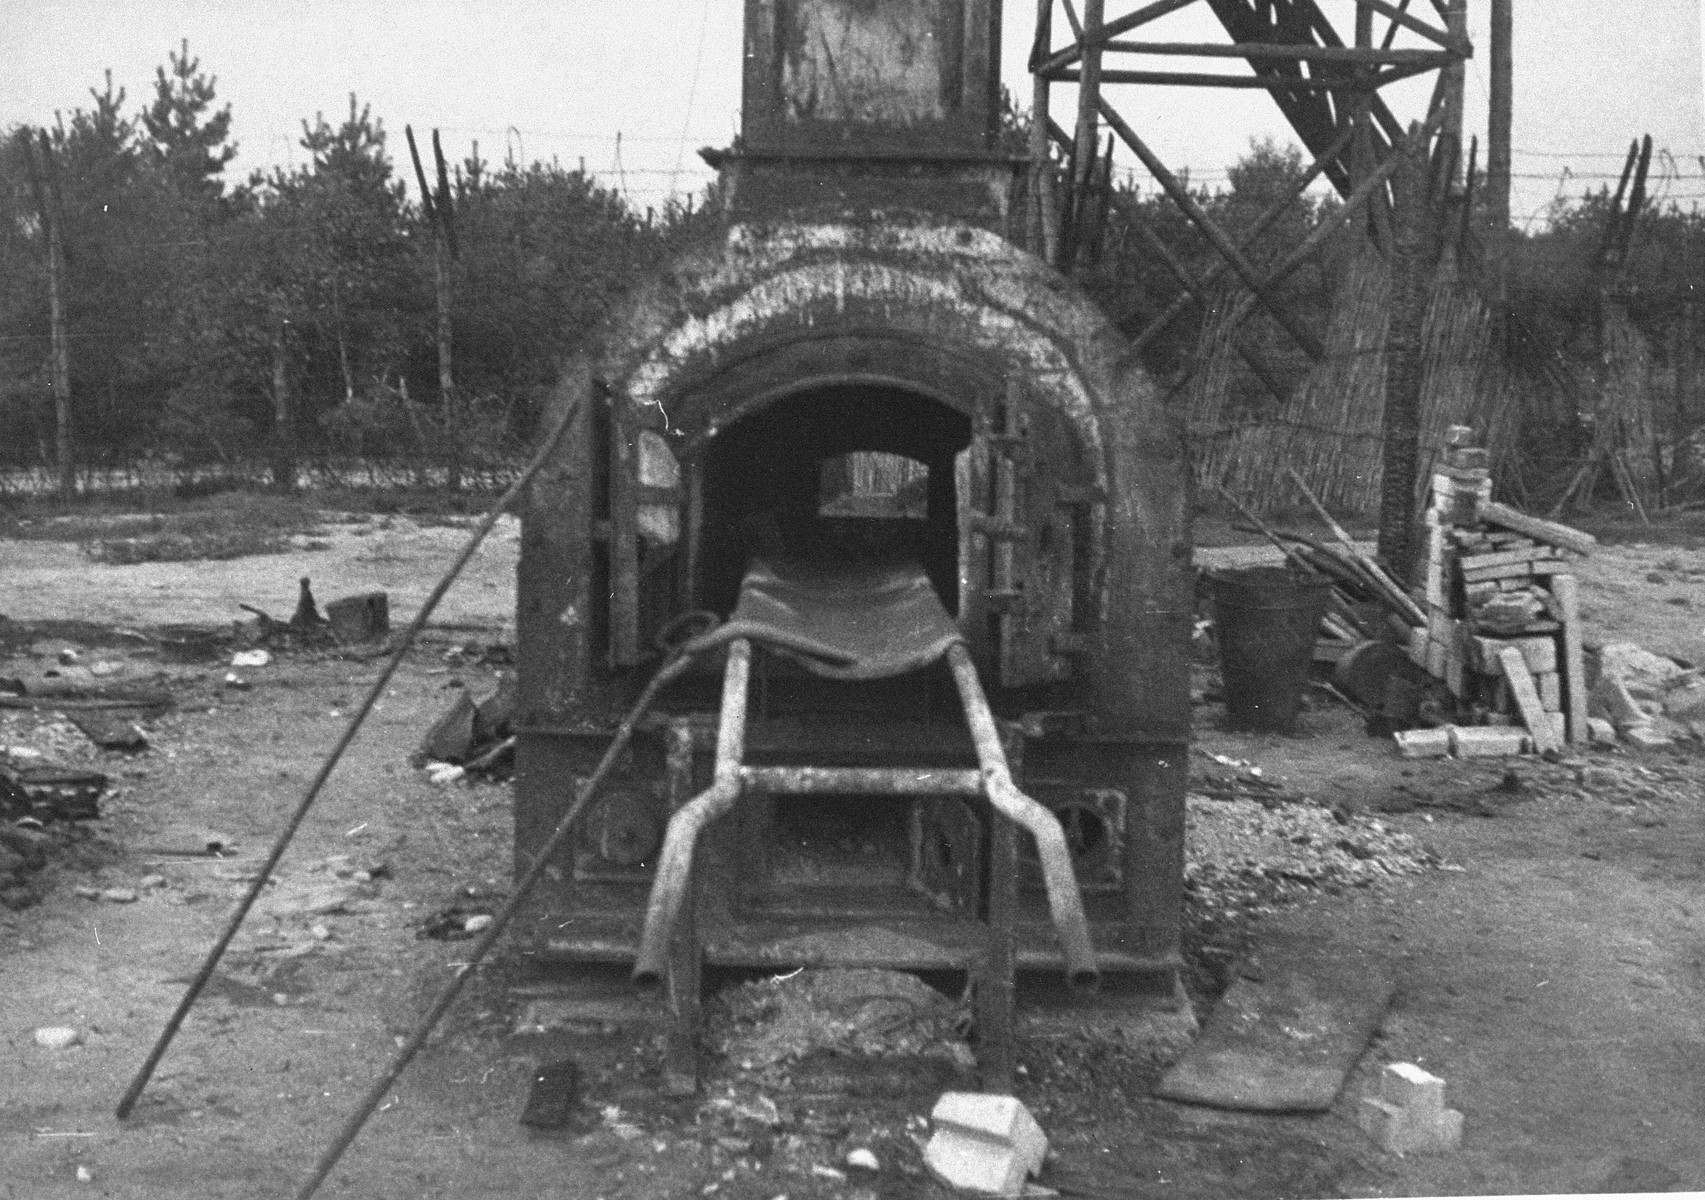 Crematorium oven at Bergen-Belsen after the liberation of the camp.